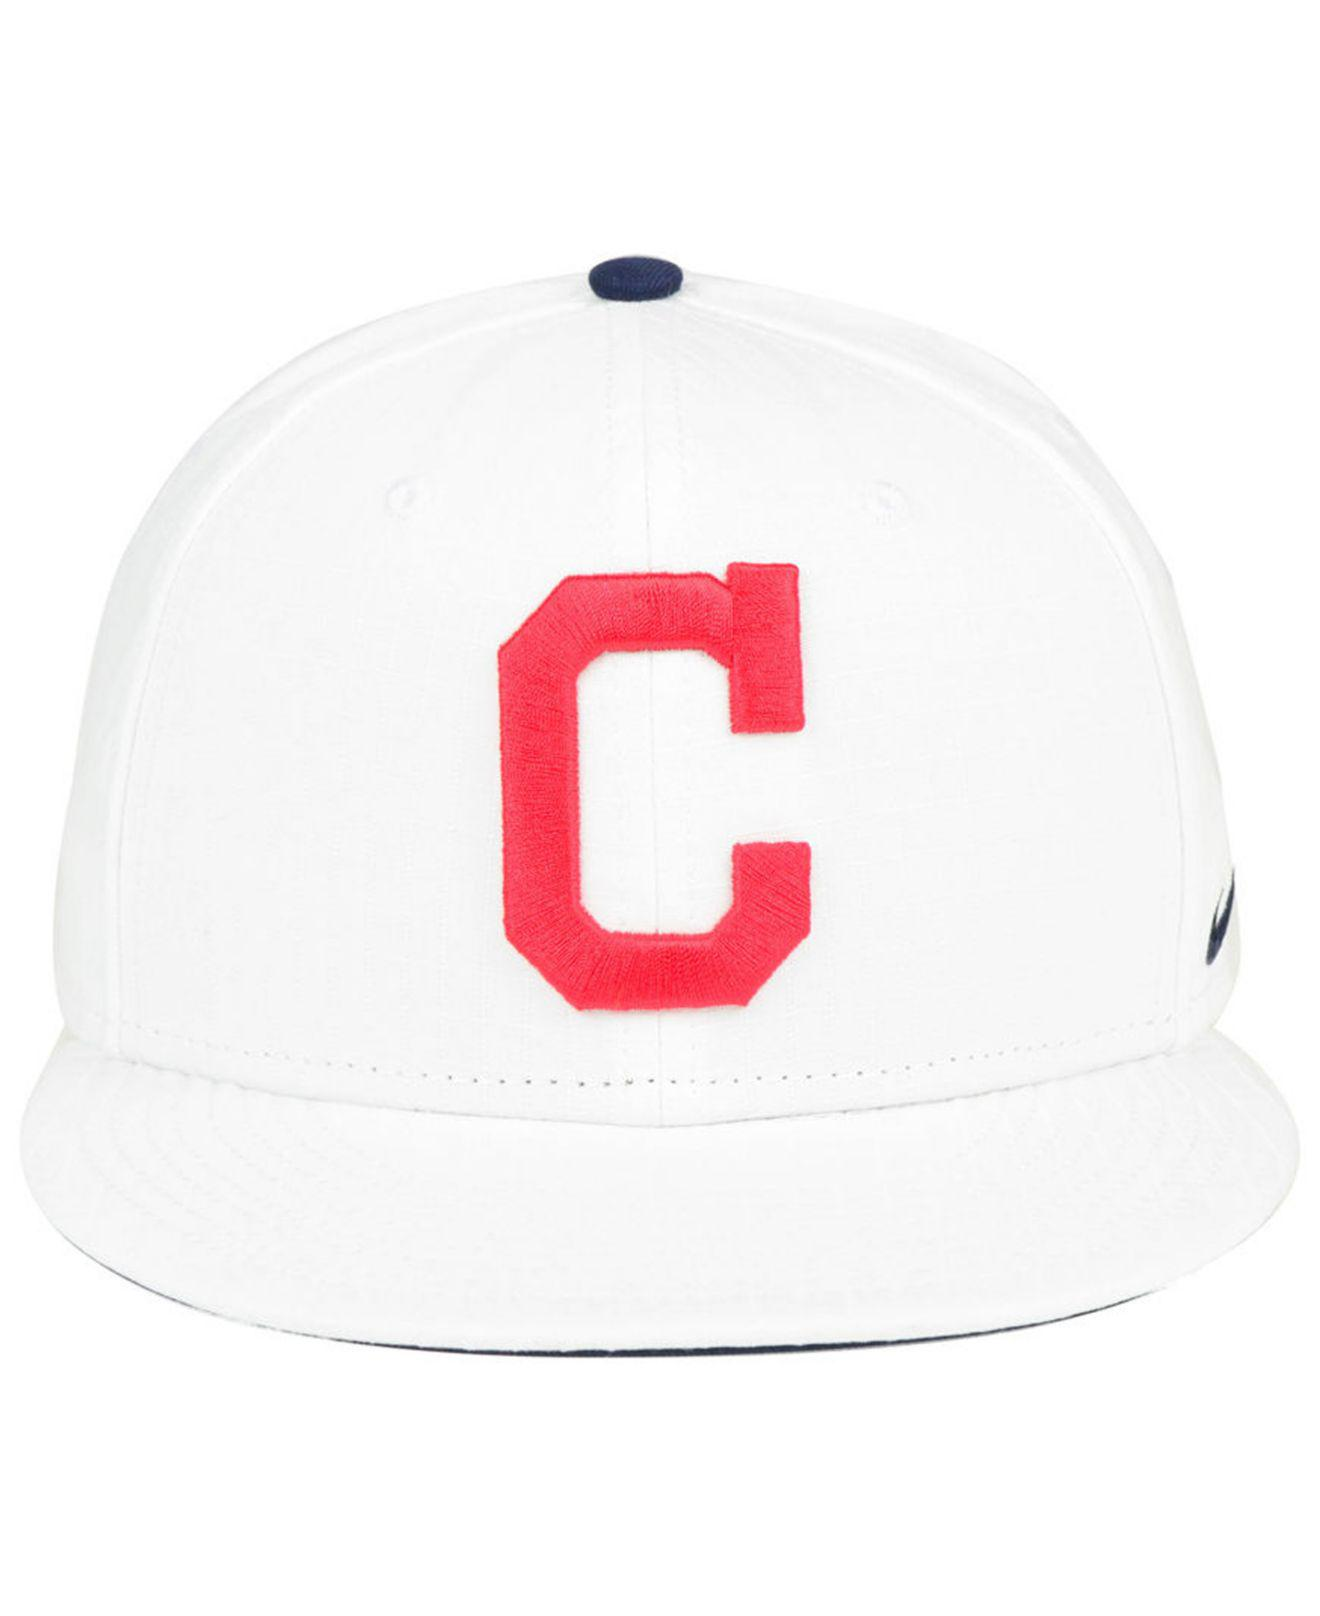 best service 26dae cc241 ... cheap lyst nike cleveland indians white ripstop snapback cap in white  for men a442e e910a